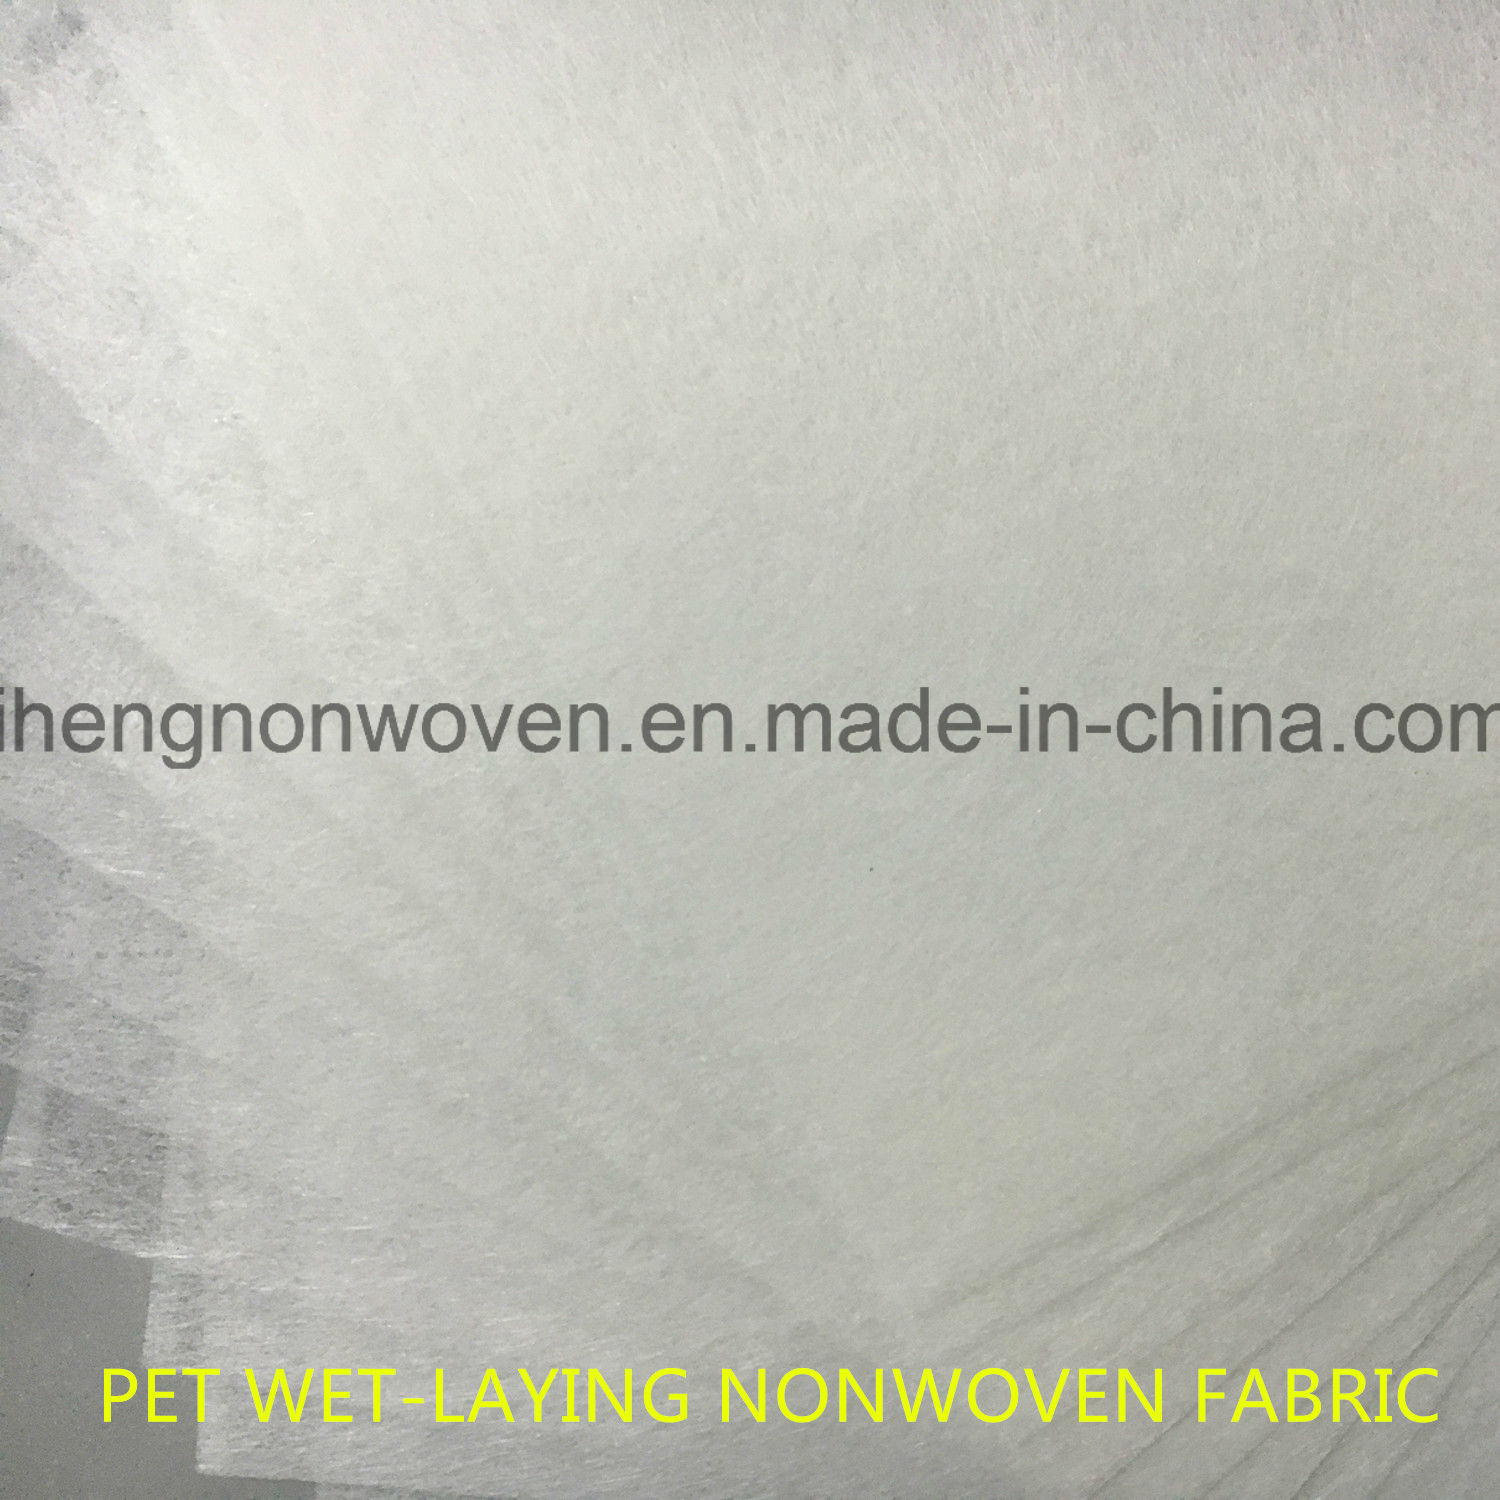 Coarse Filter Media Pet Wet-Laying Nonwoven Fabric